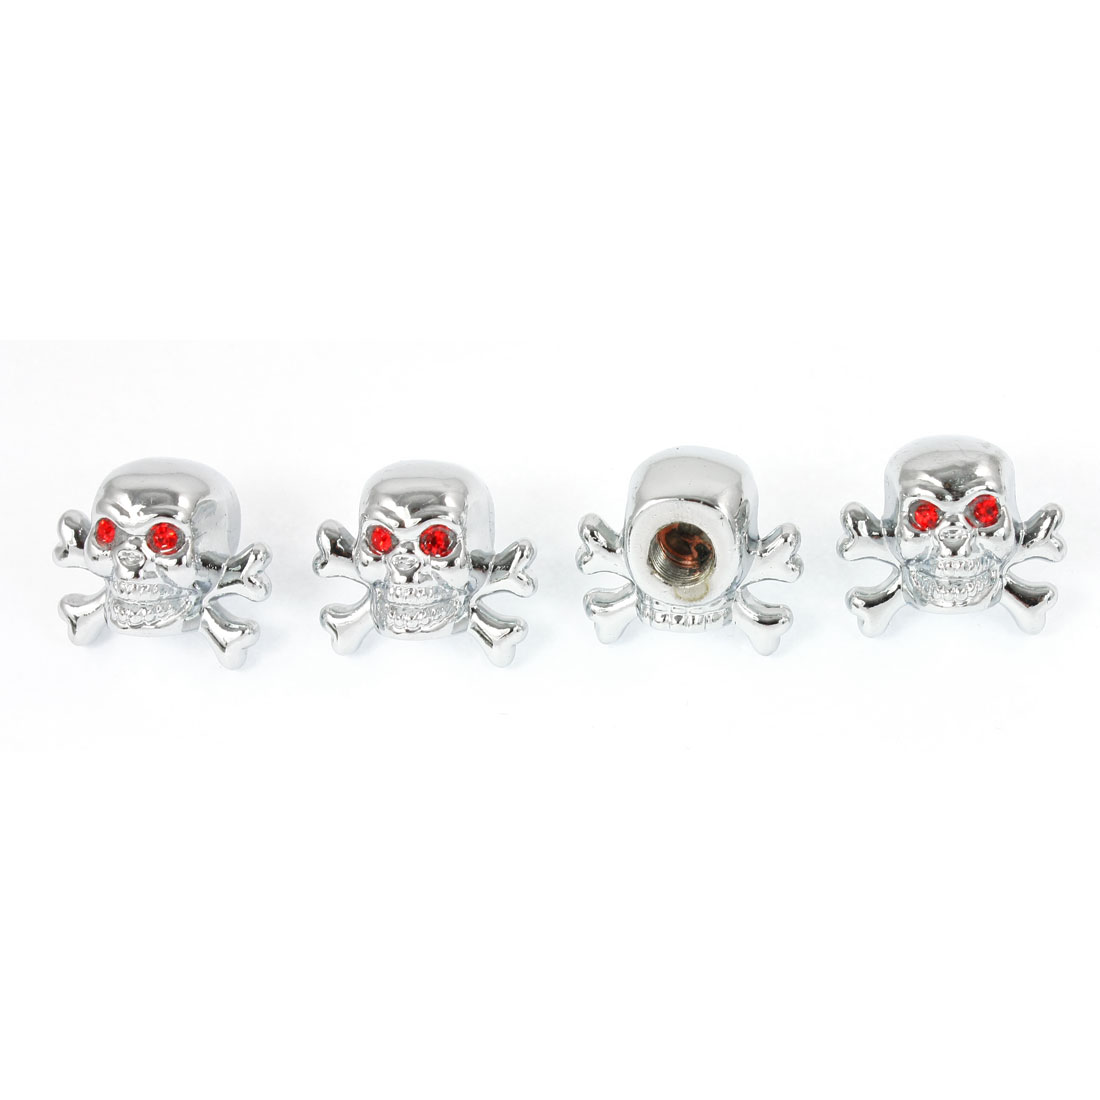 4 Pcs Red Rhinestones Eyes Skull Shape Metal Auto Tire Valve Dust Cap Cover Silver Tone